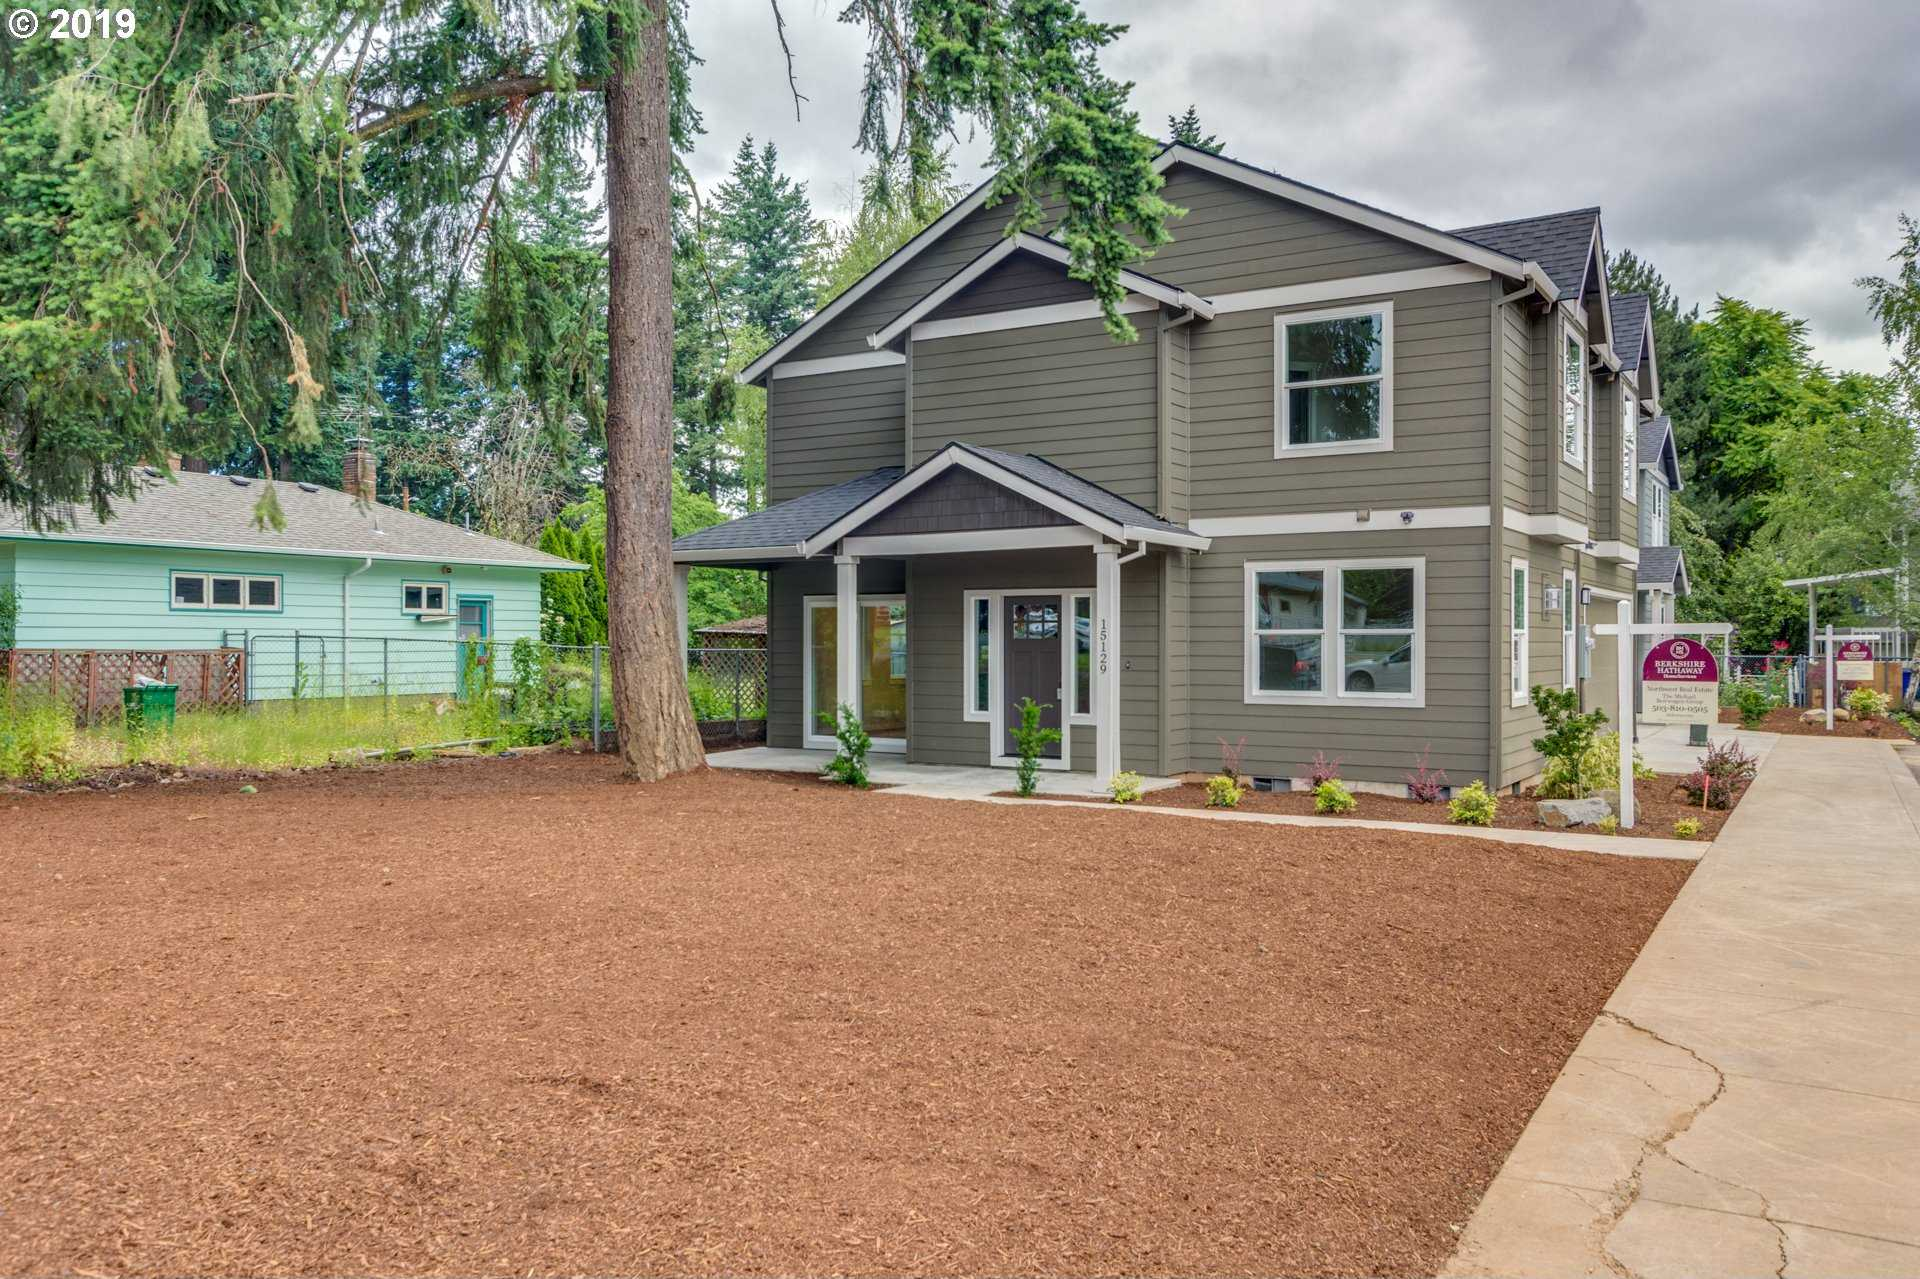 $395,000 - 4Br/3Ba -  for Sale in Daisy Place, Portland